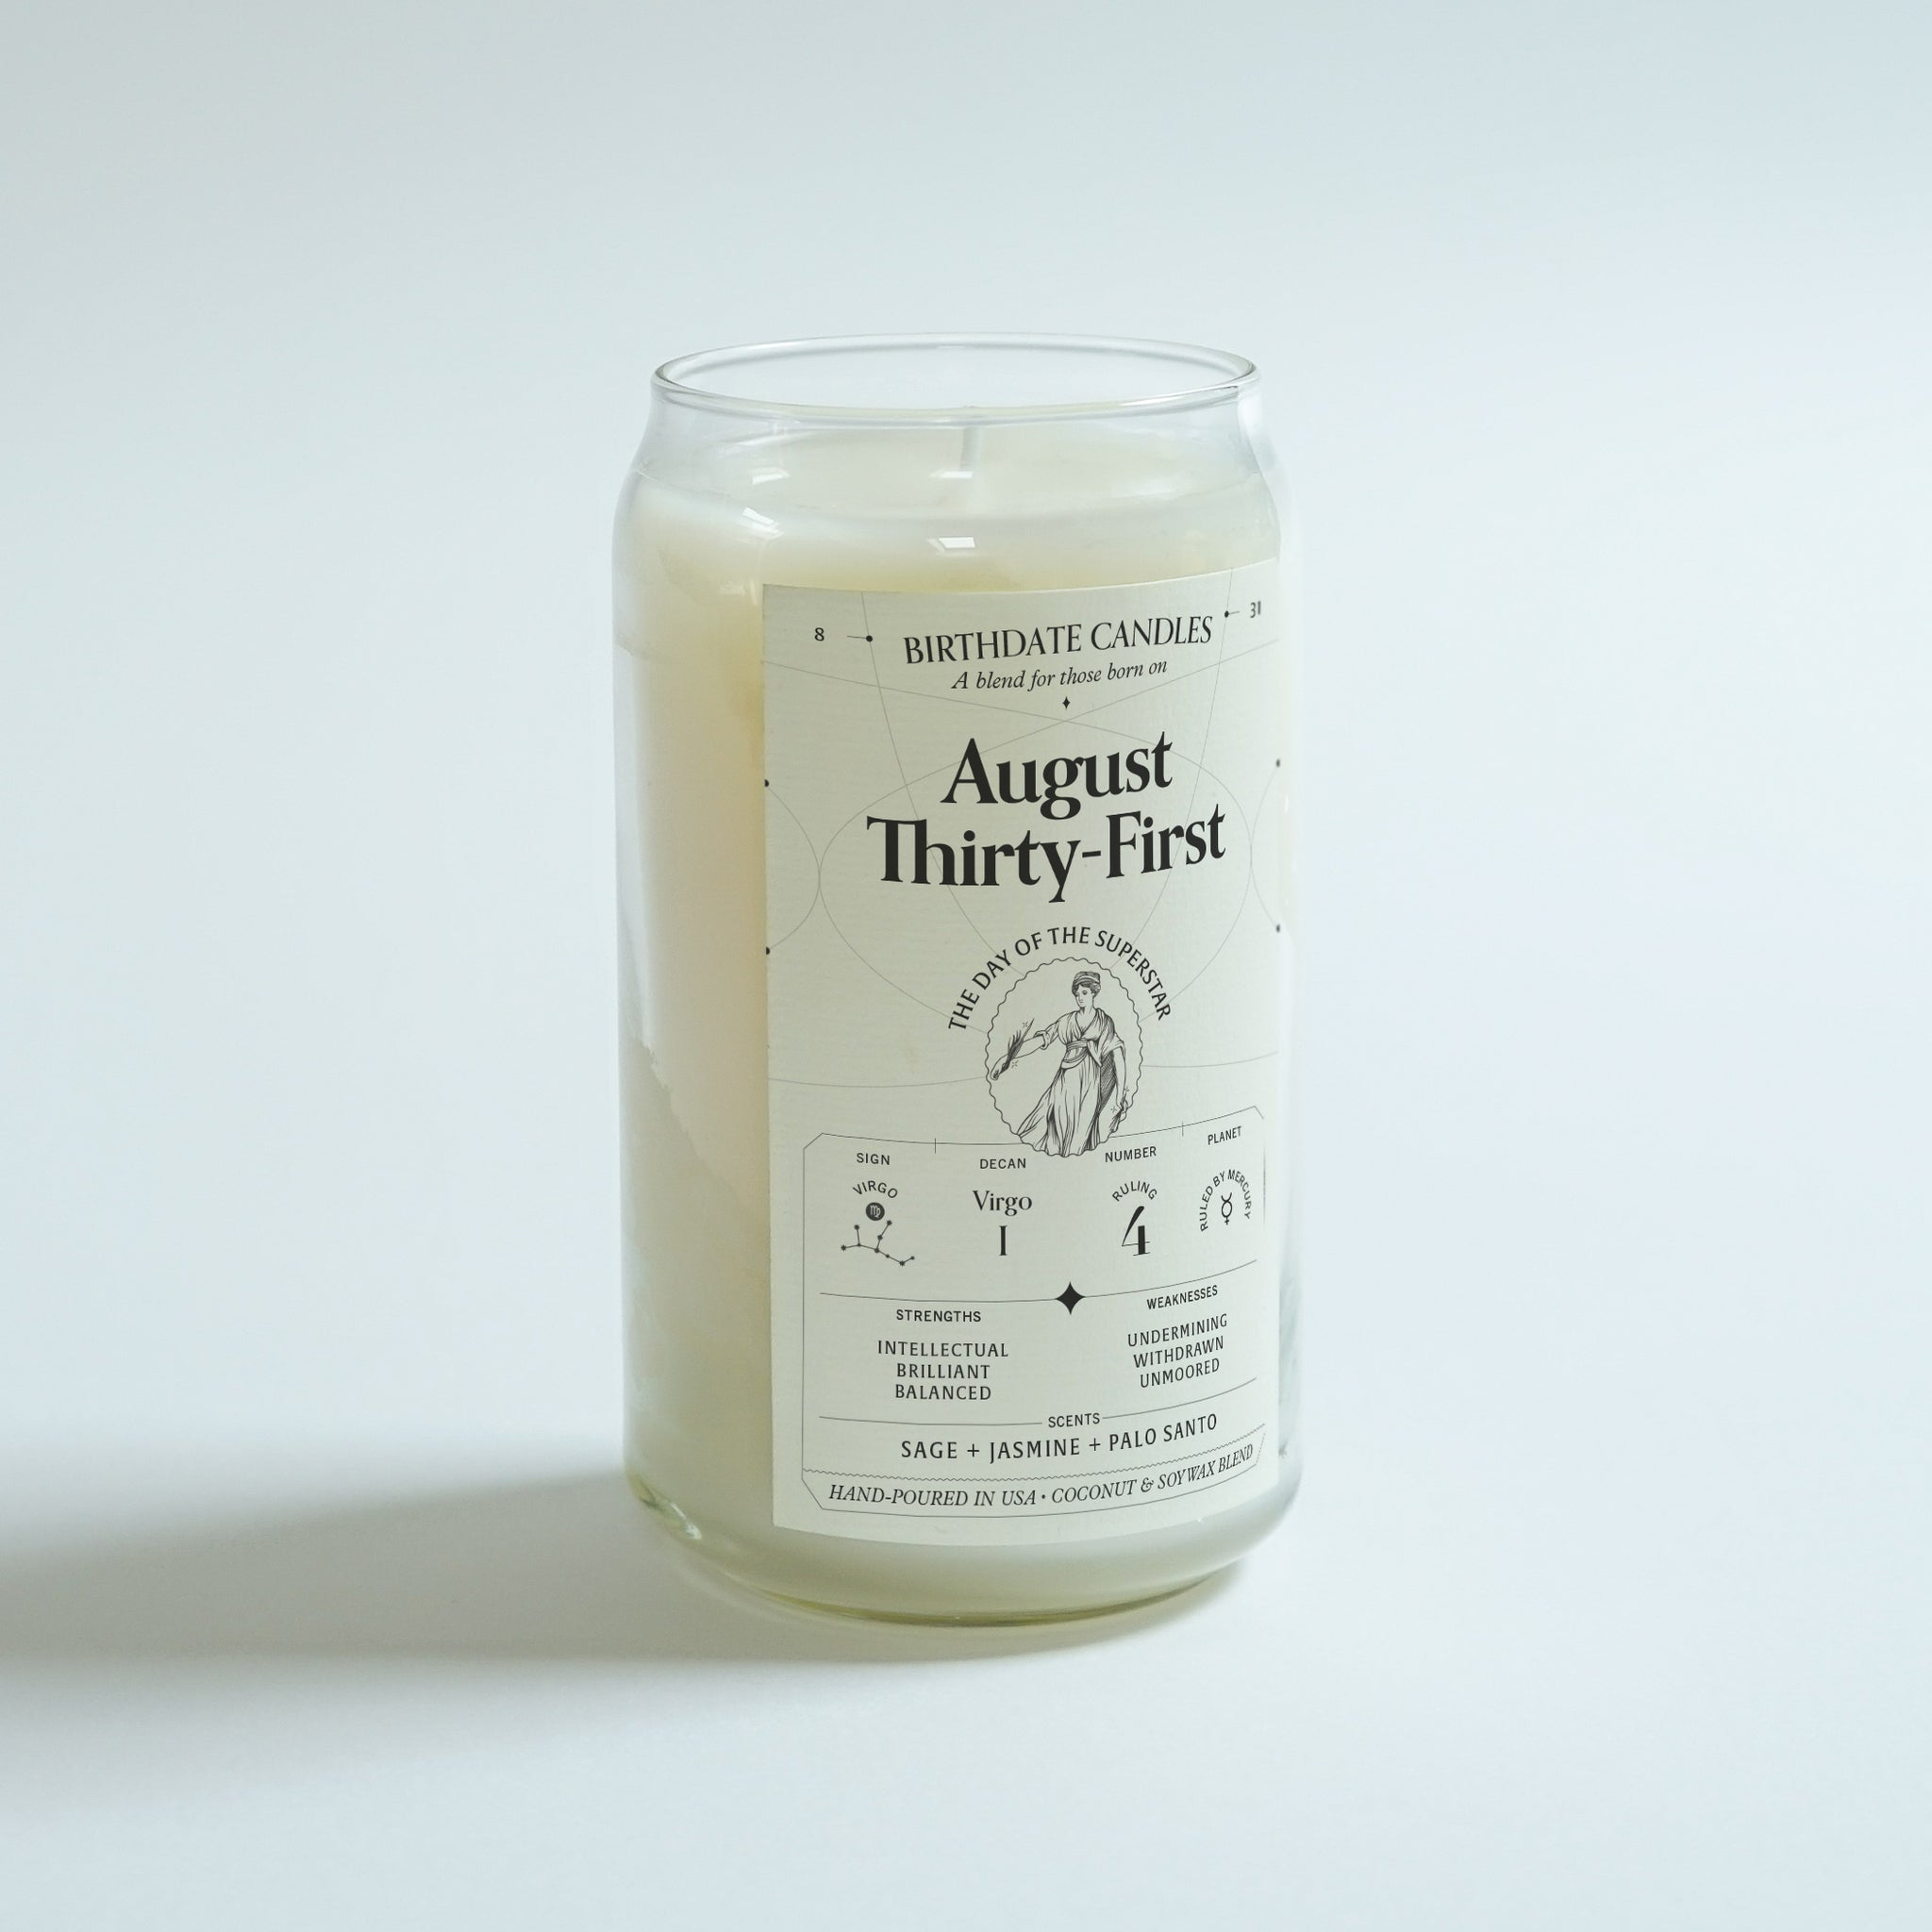 The August Thirty-First Birthday Candle